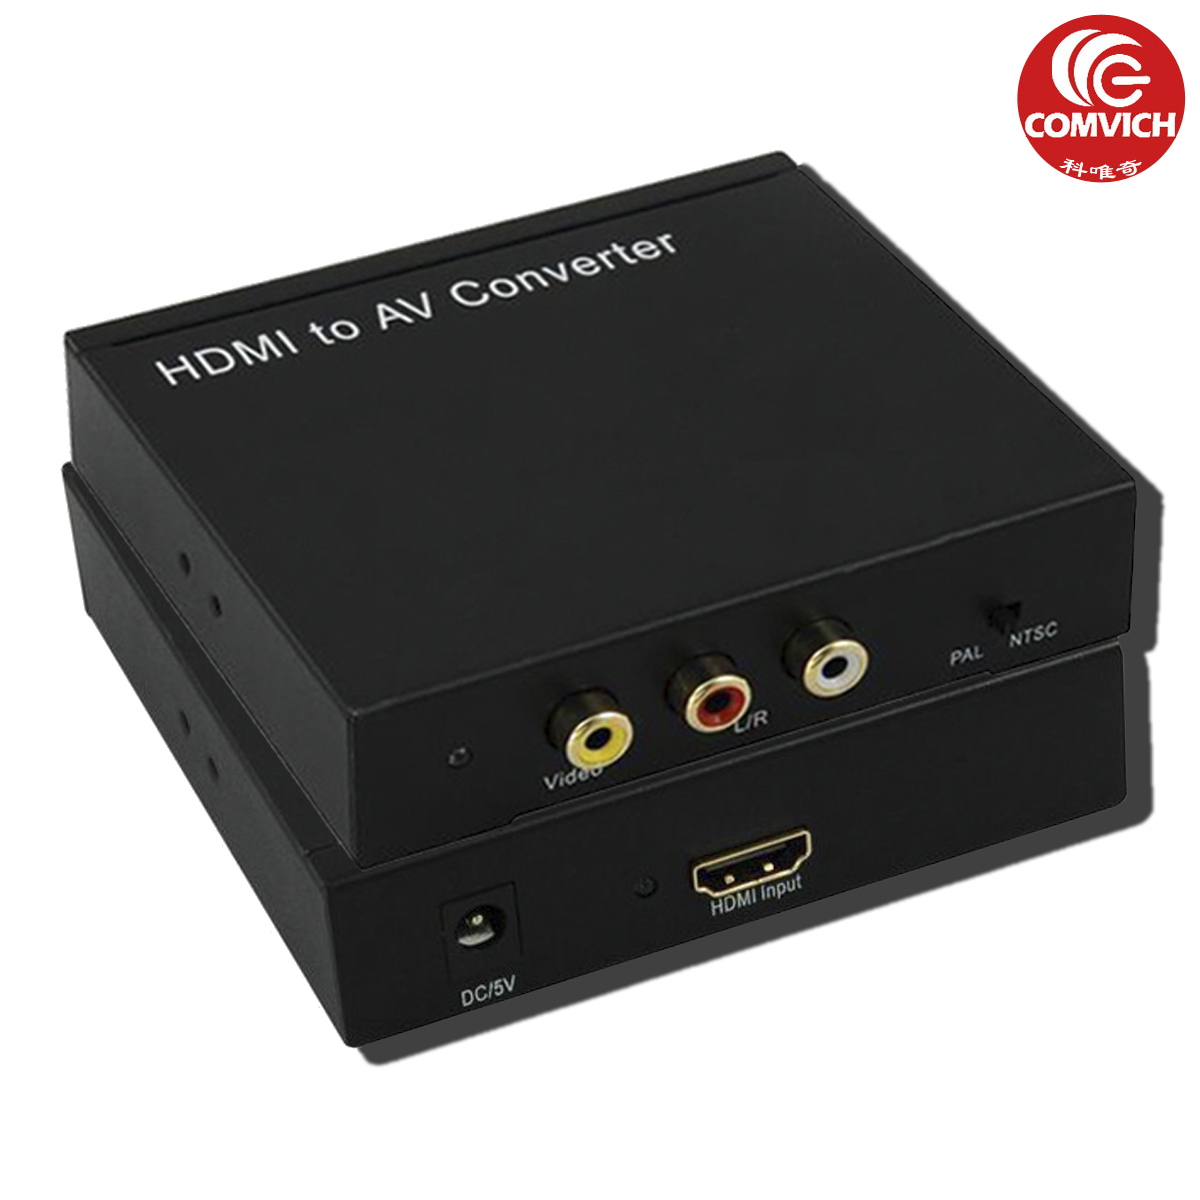 Branch only odd hdmi to av converter hdmi to cvbs hdmi to composite video ntsc/pal switch